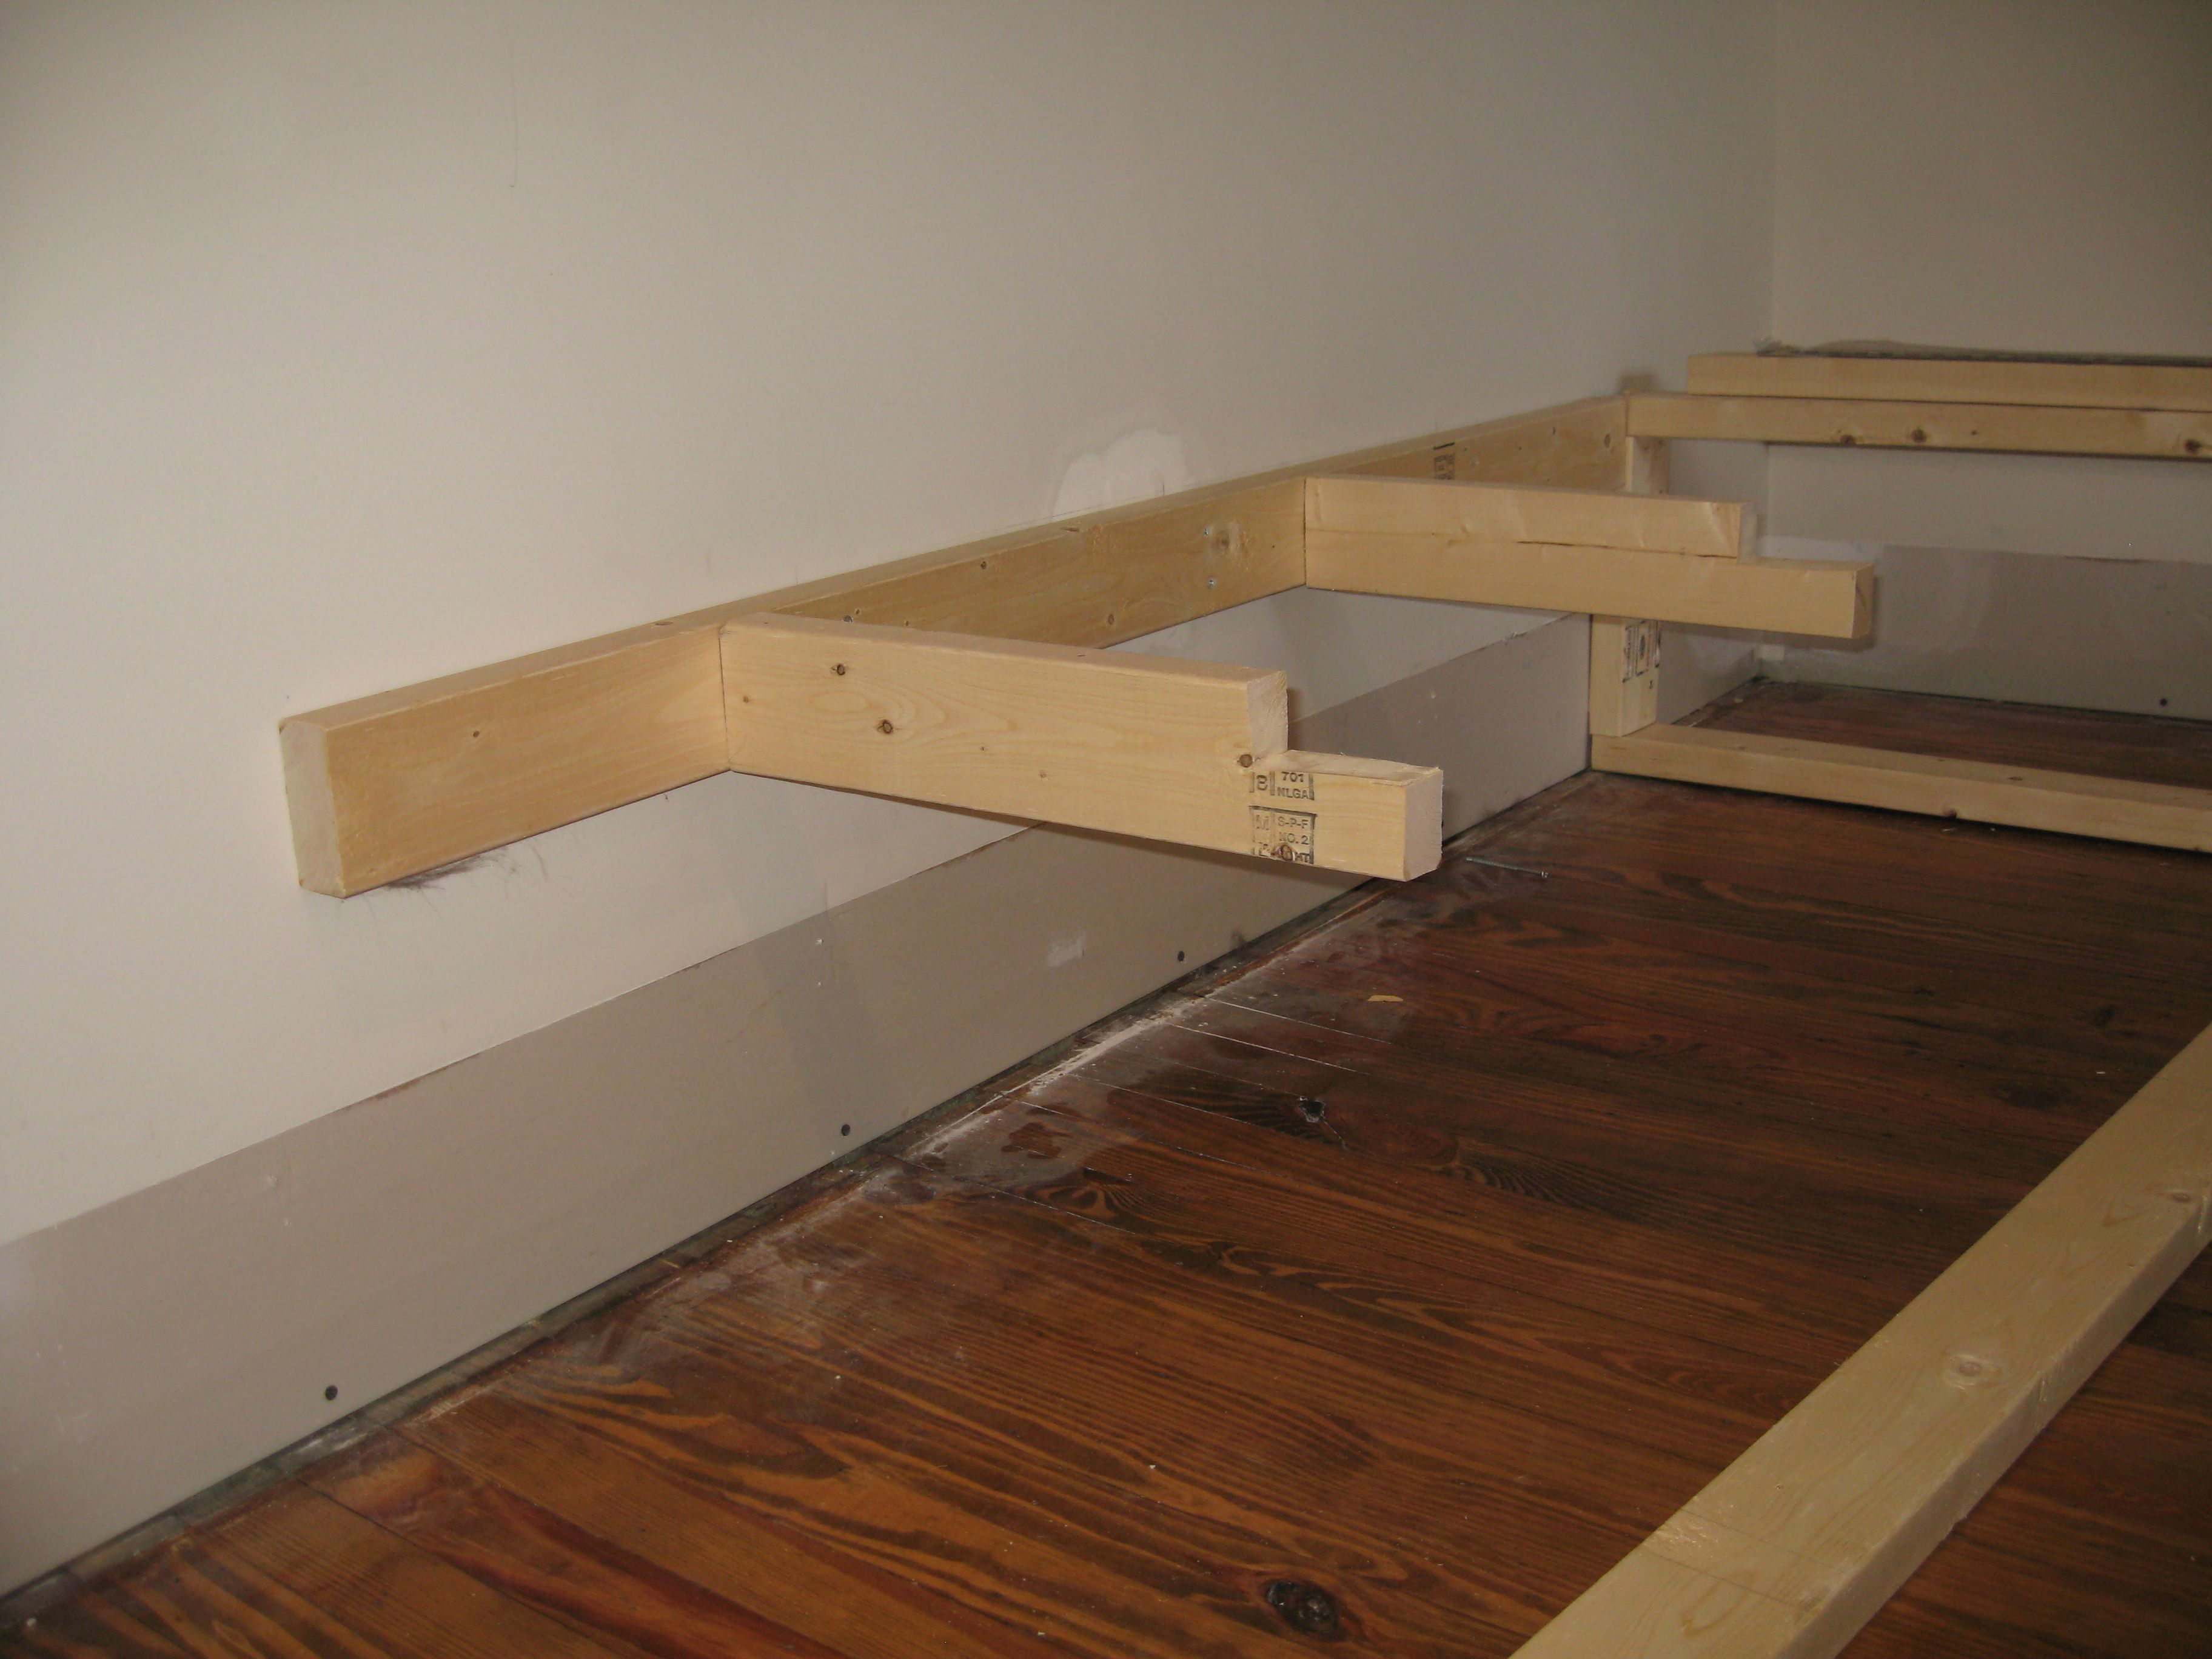 Building the banquette frame jill carson - Building a kitchen bench ...